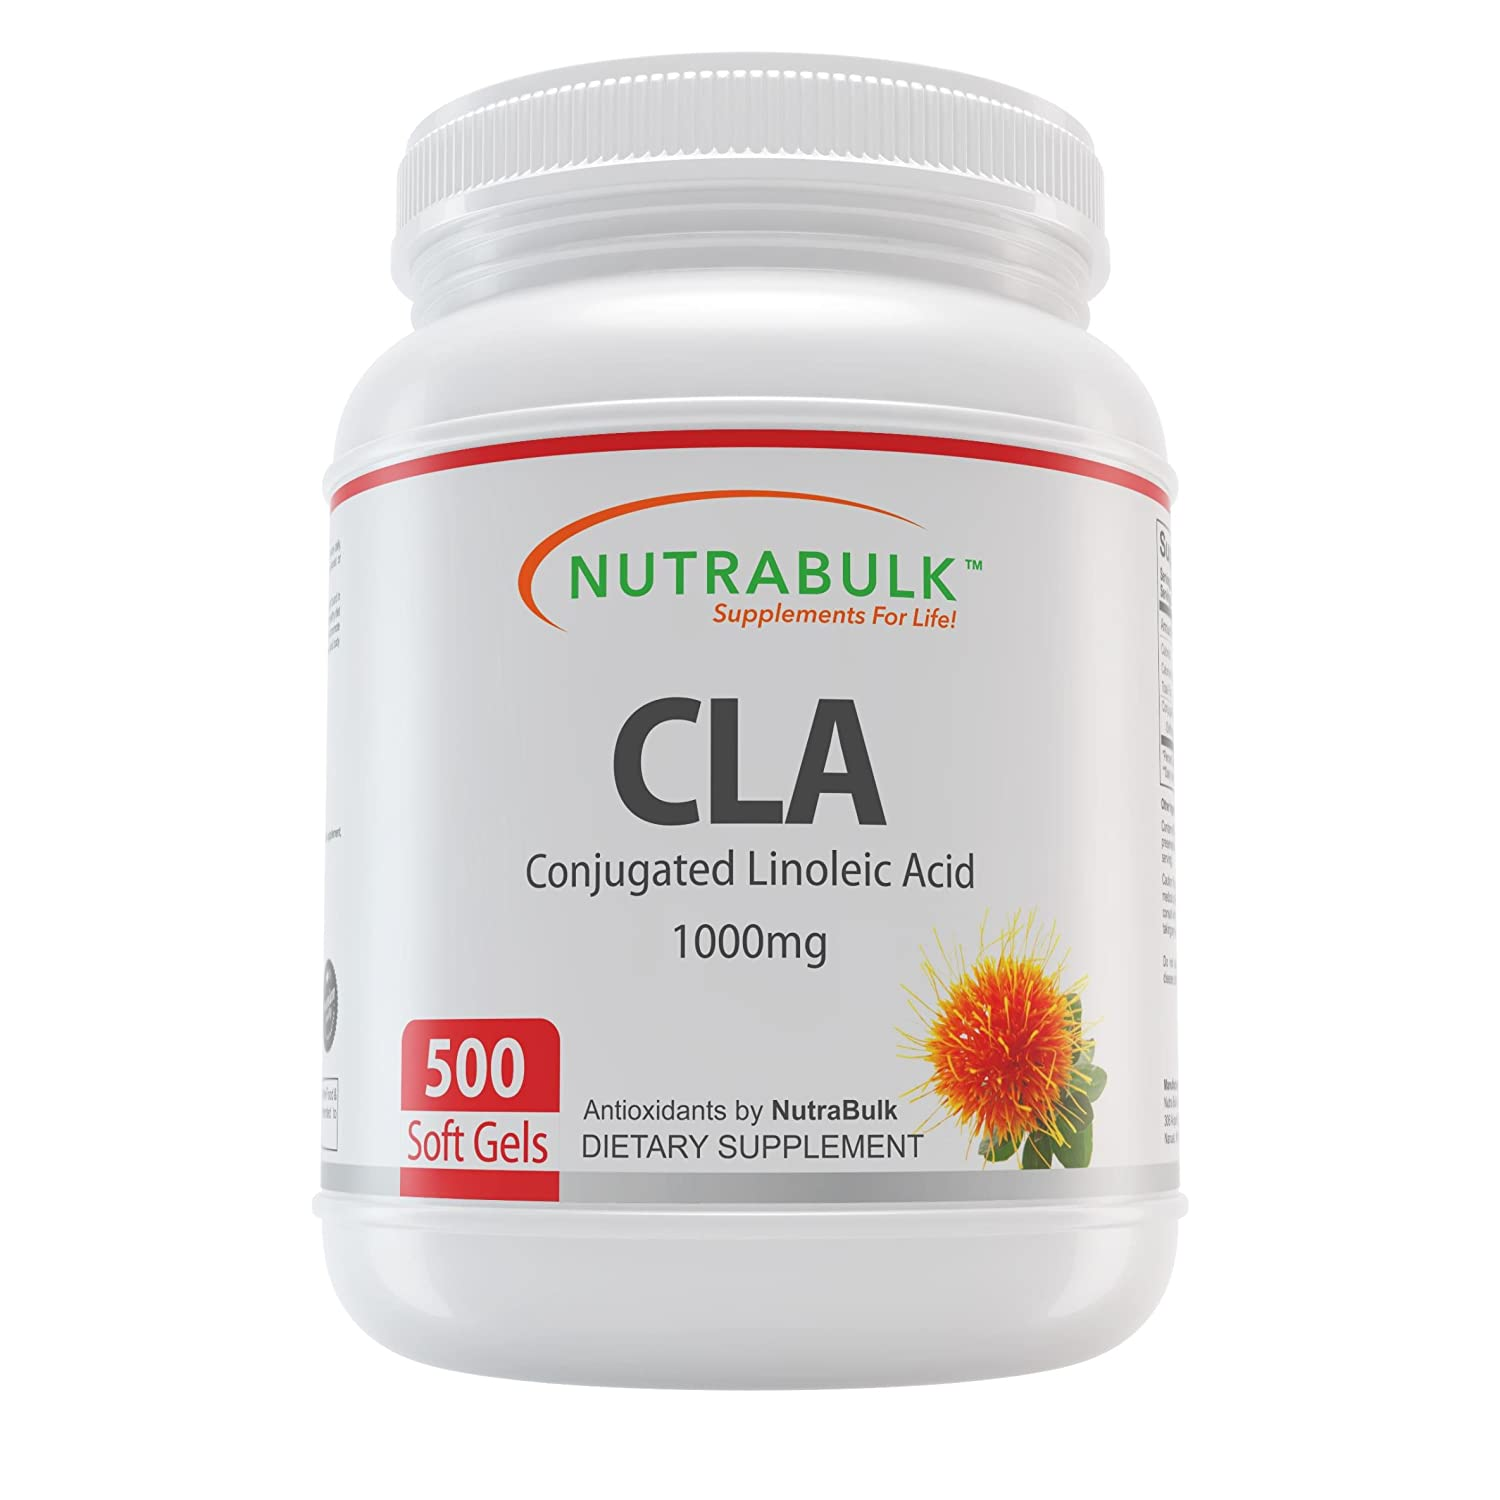 NutraBulk CLA Conjugated Linoleic Acid 1000mg Soft Gels – 500 Count